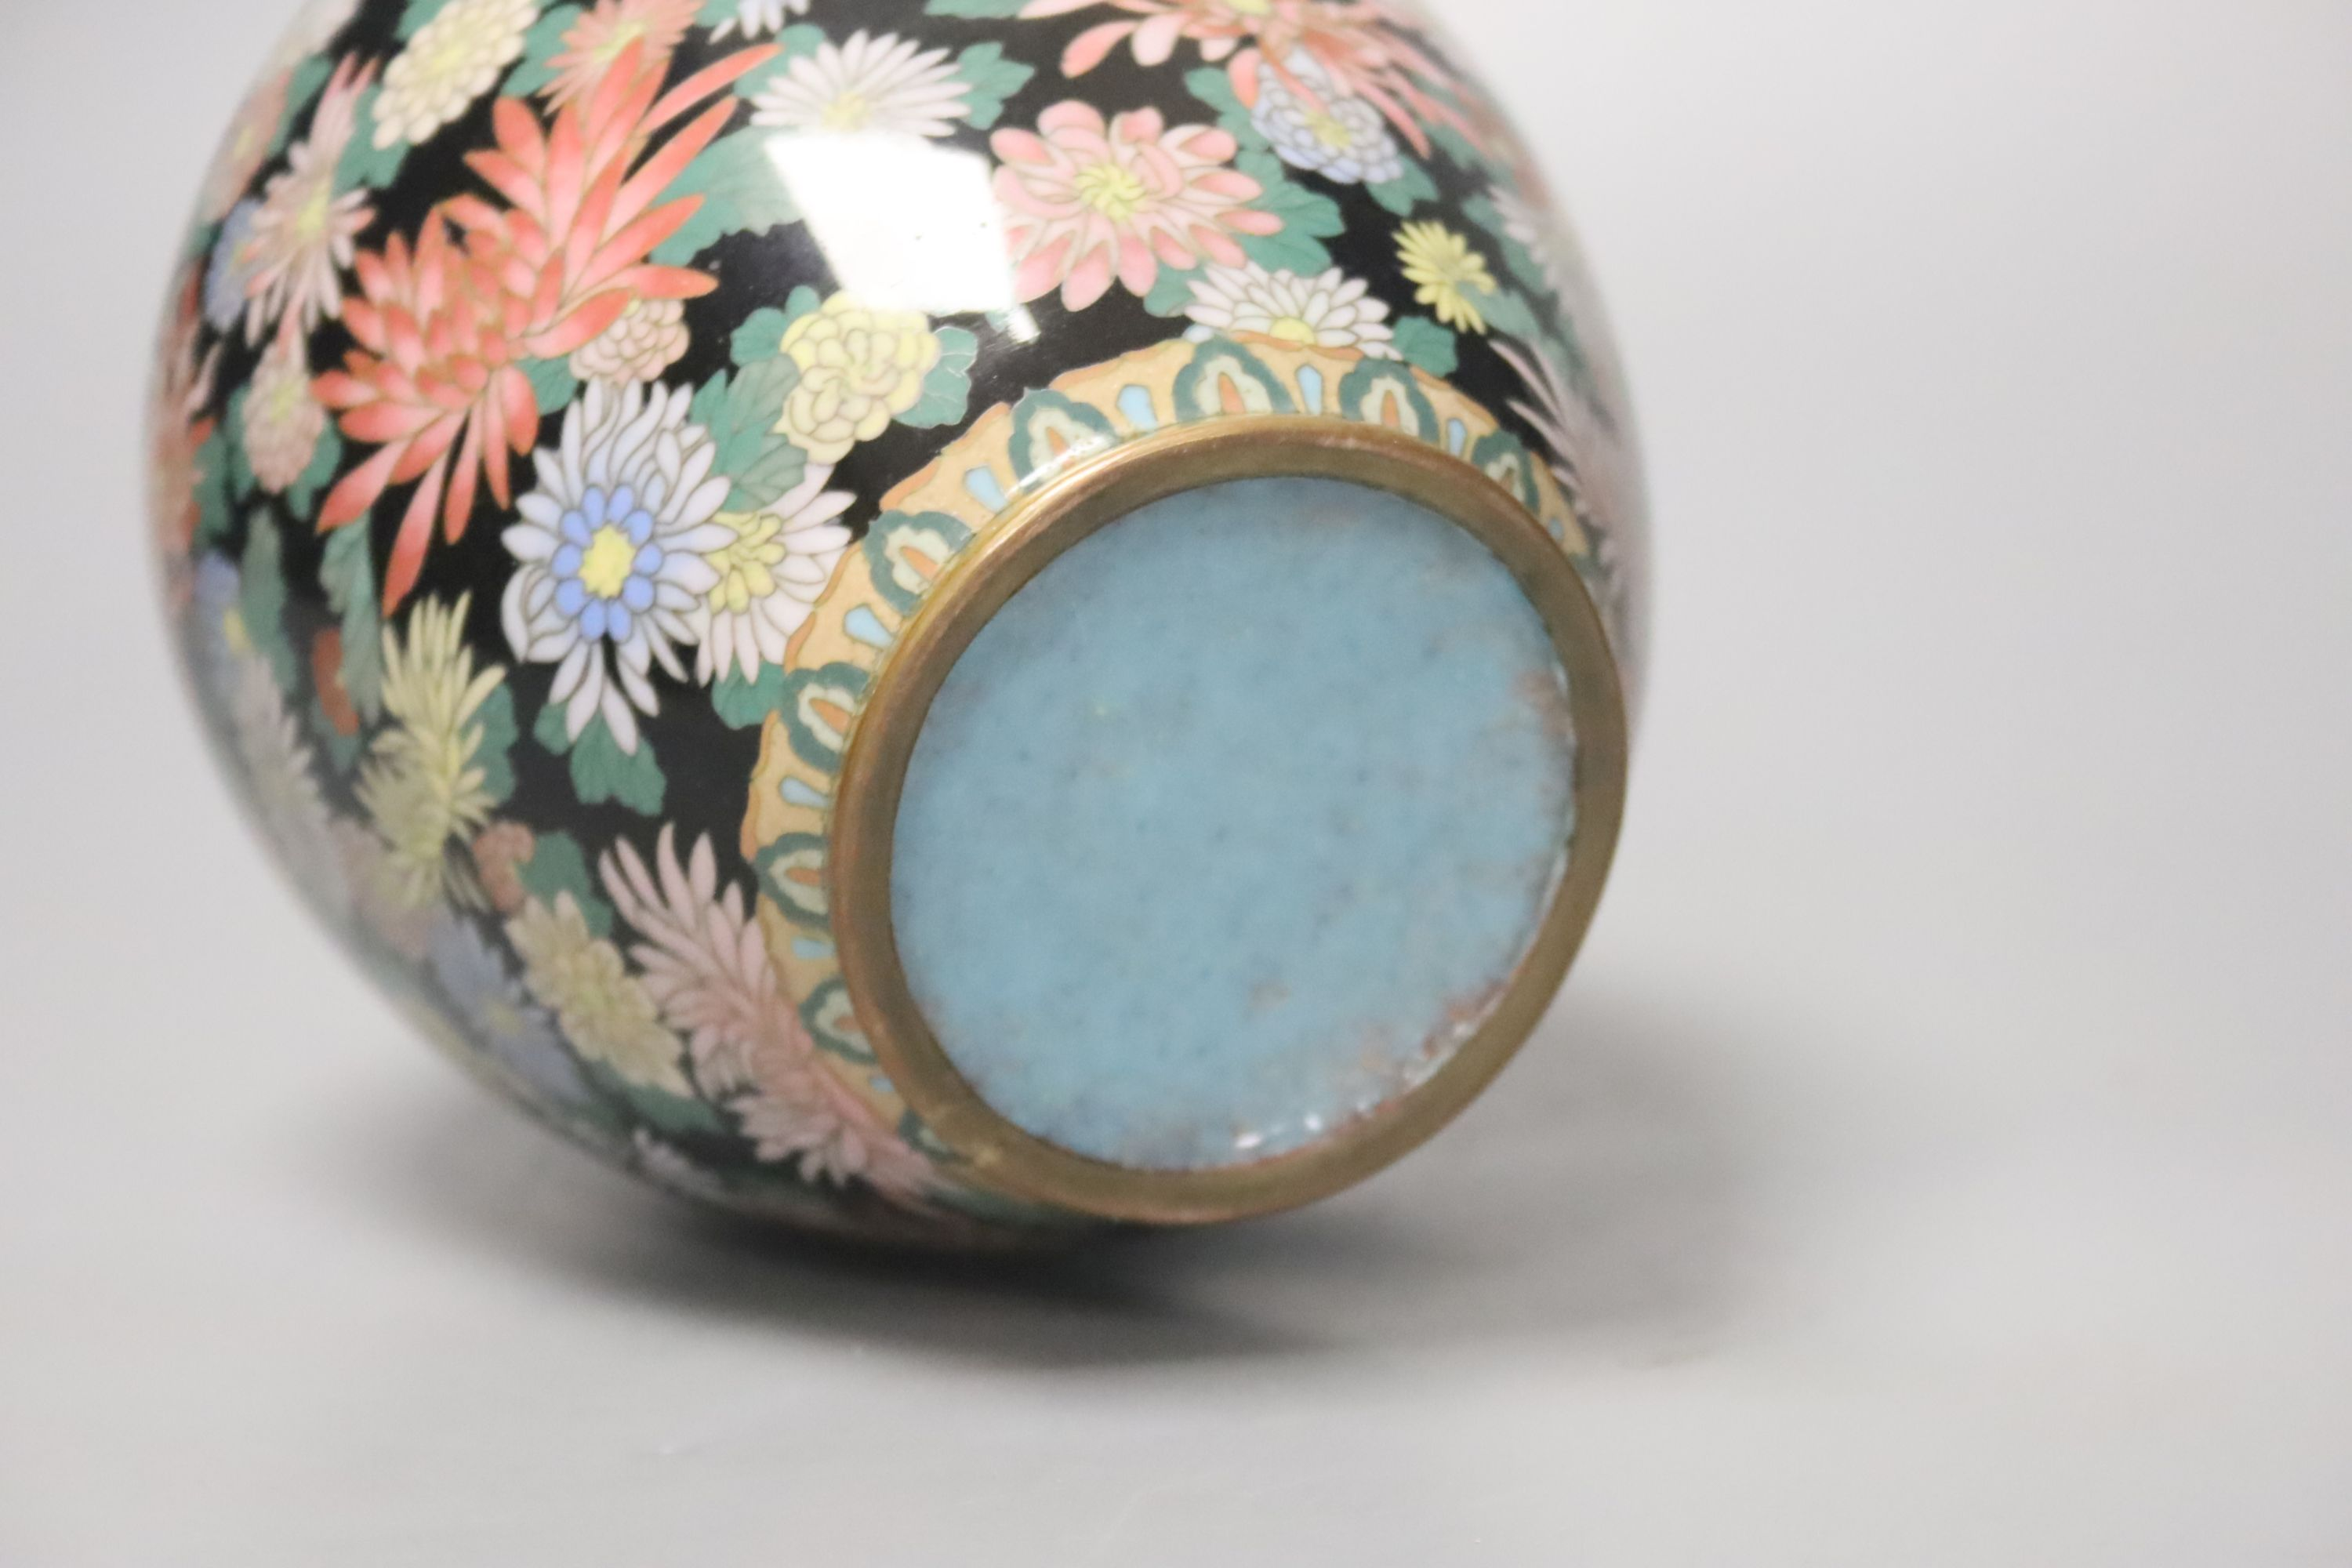 A Japanese silver wire cloisonne vase, decorated with flower heads, possibly Inaba, 16cm high - Image 4 of 4